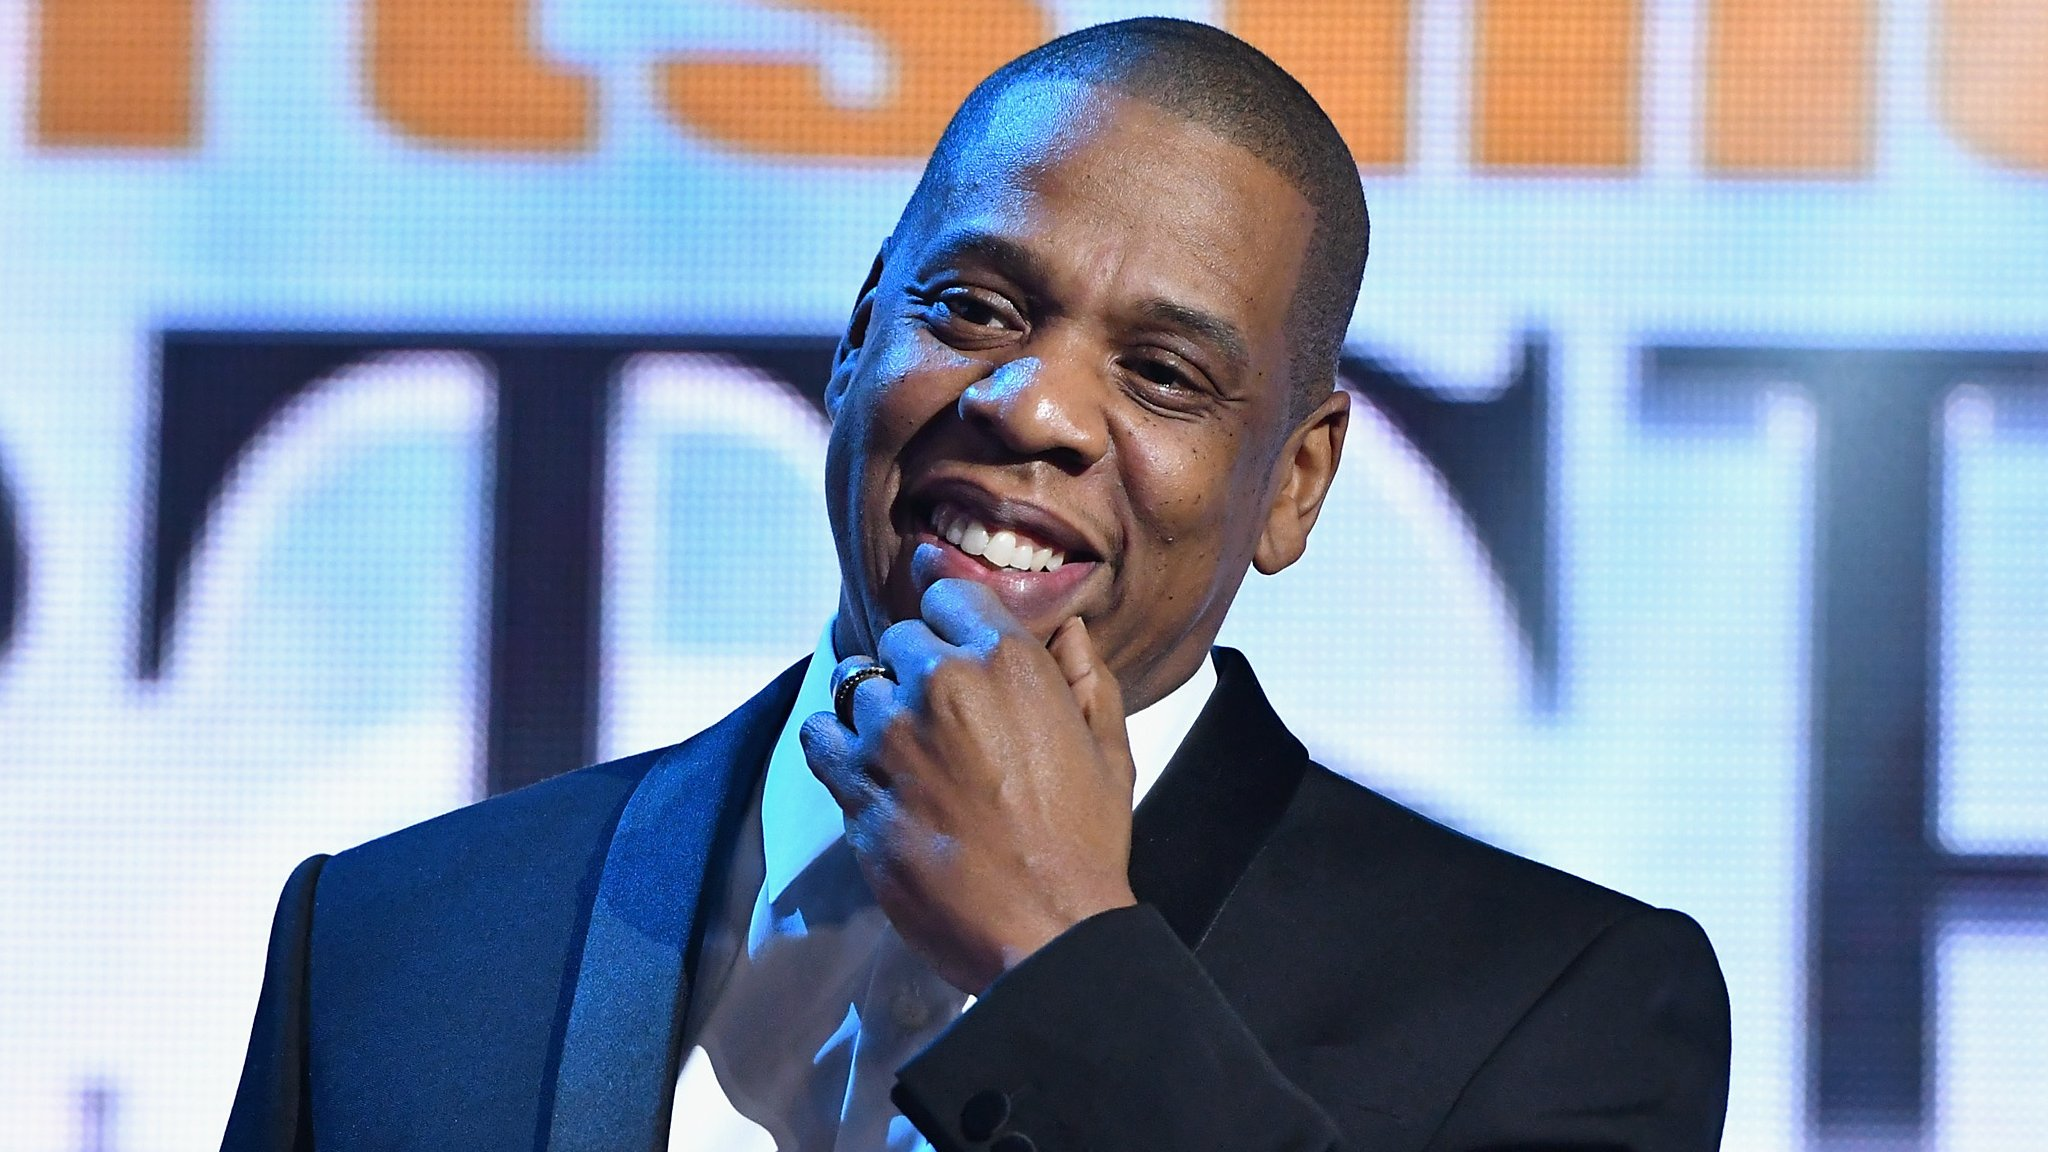 BBC News - Jay Z to become first rapper inducted into Songwriters Hall of Fame